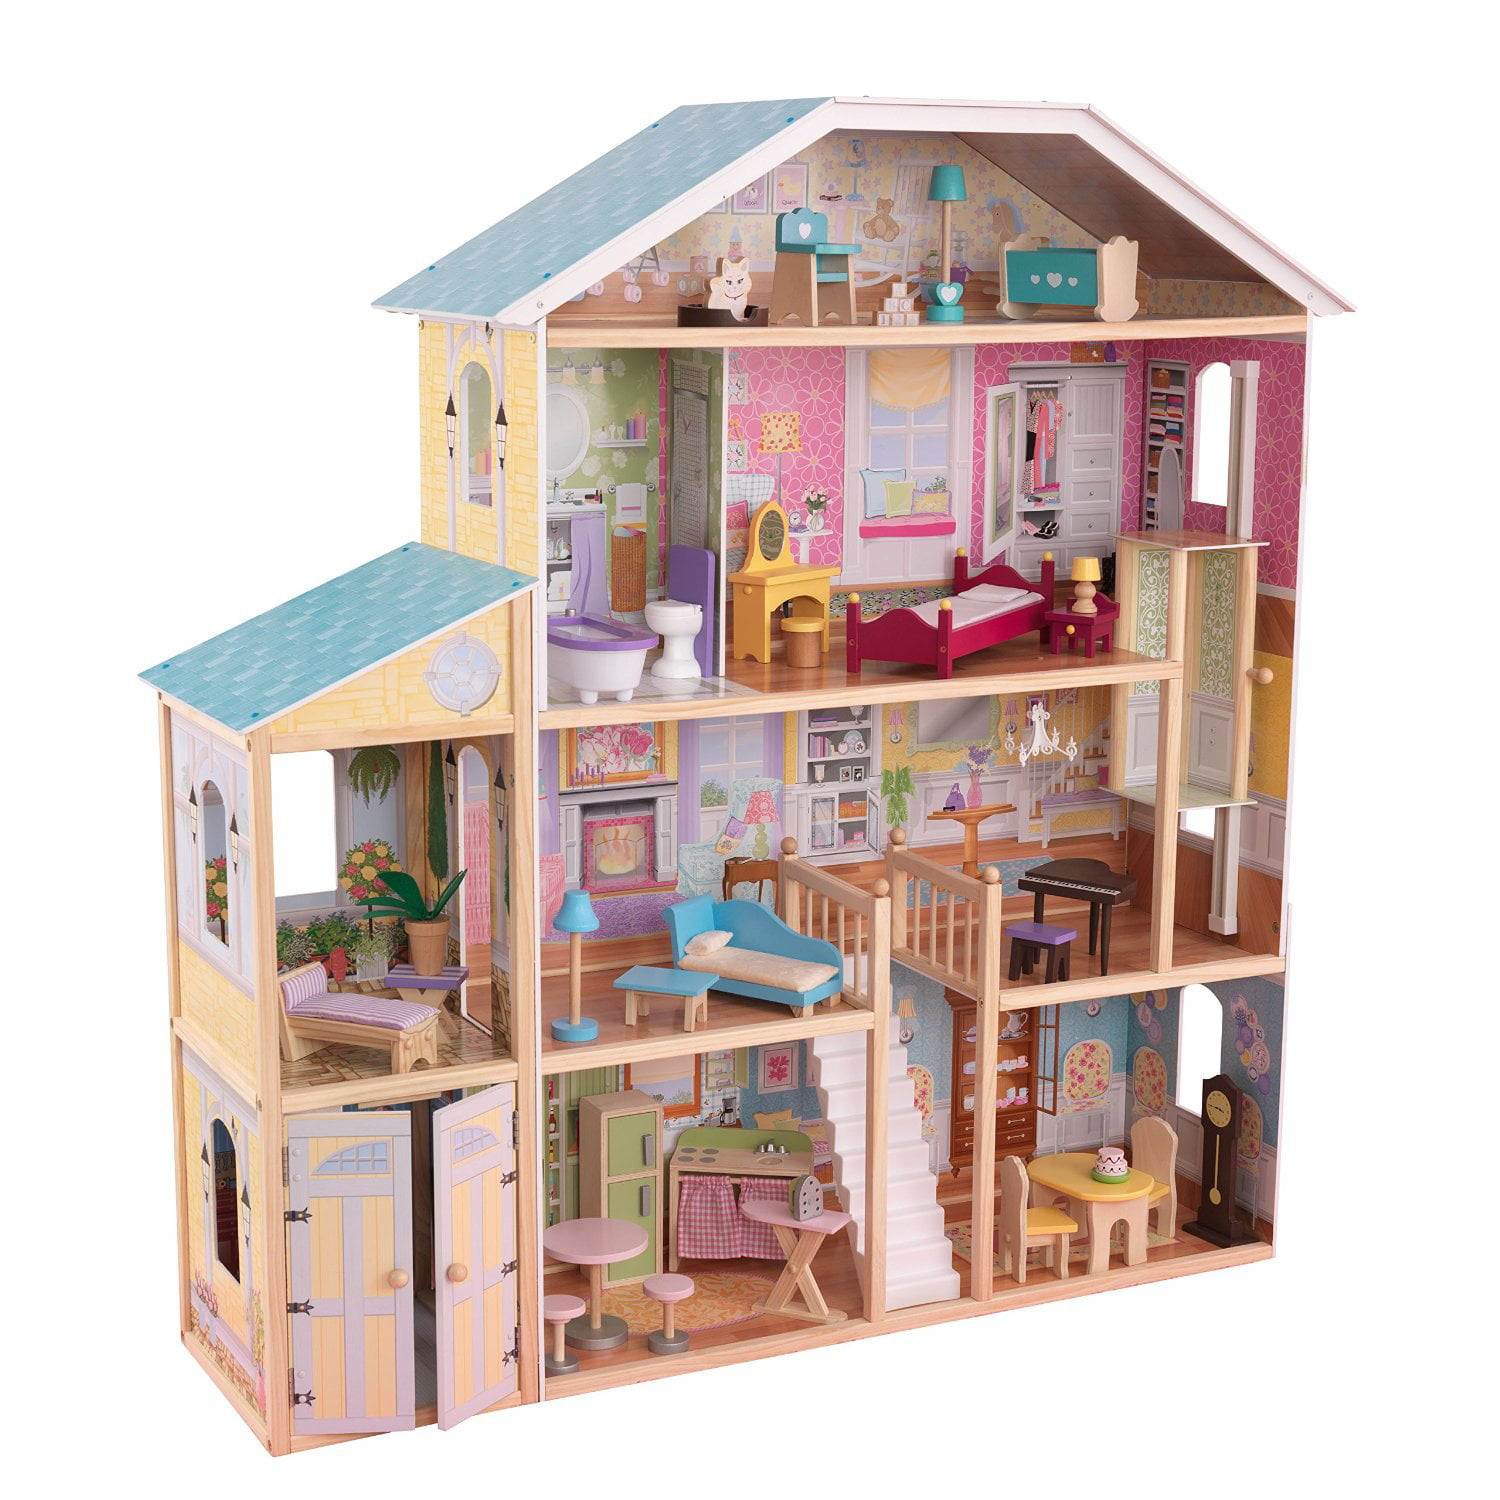 KidKraft Majestic Mansion Dollhouse with Furniture Wooden Doll House | 65252 by KidKraft